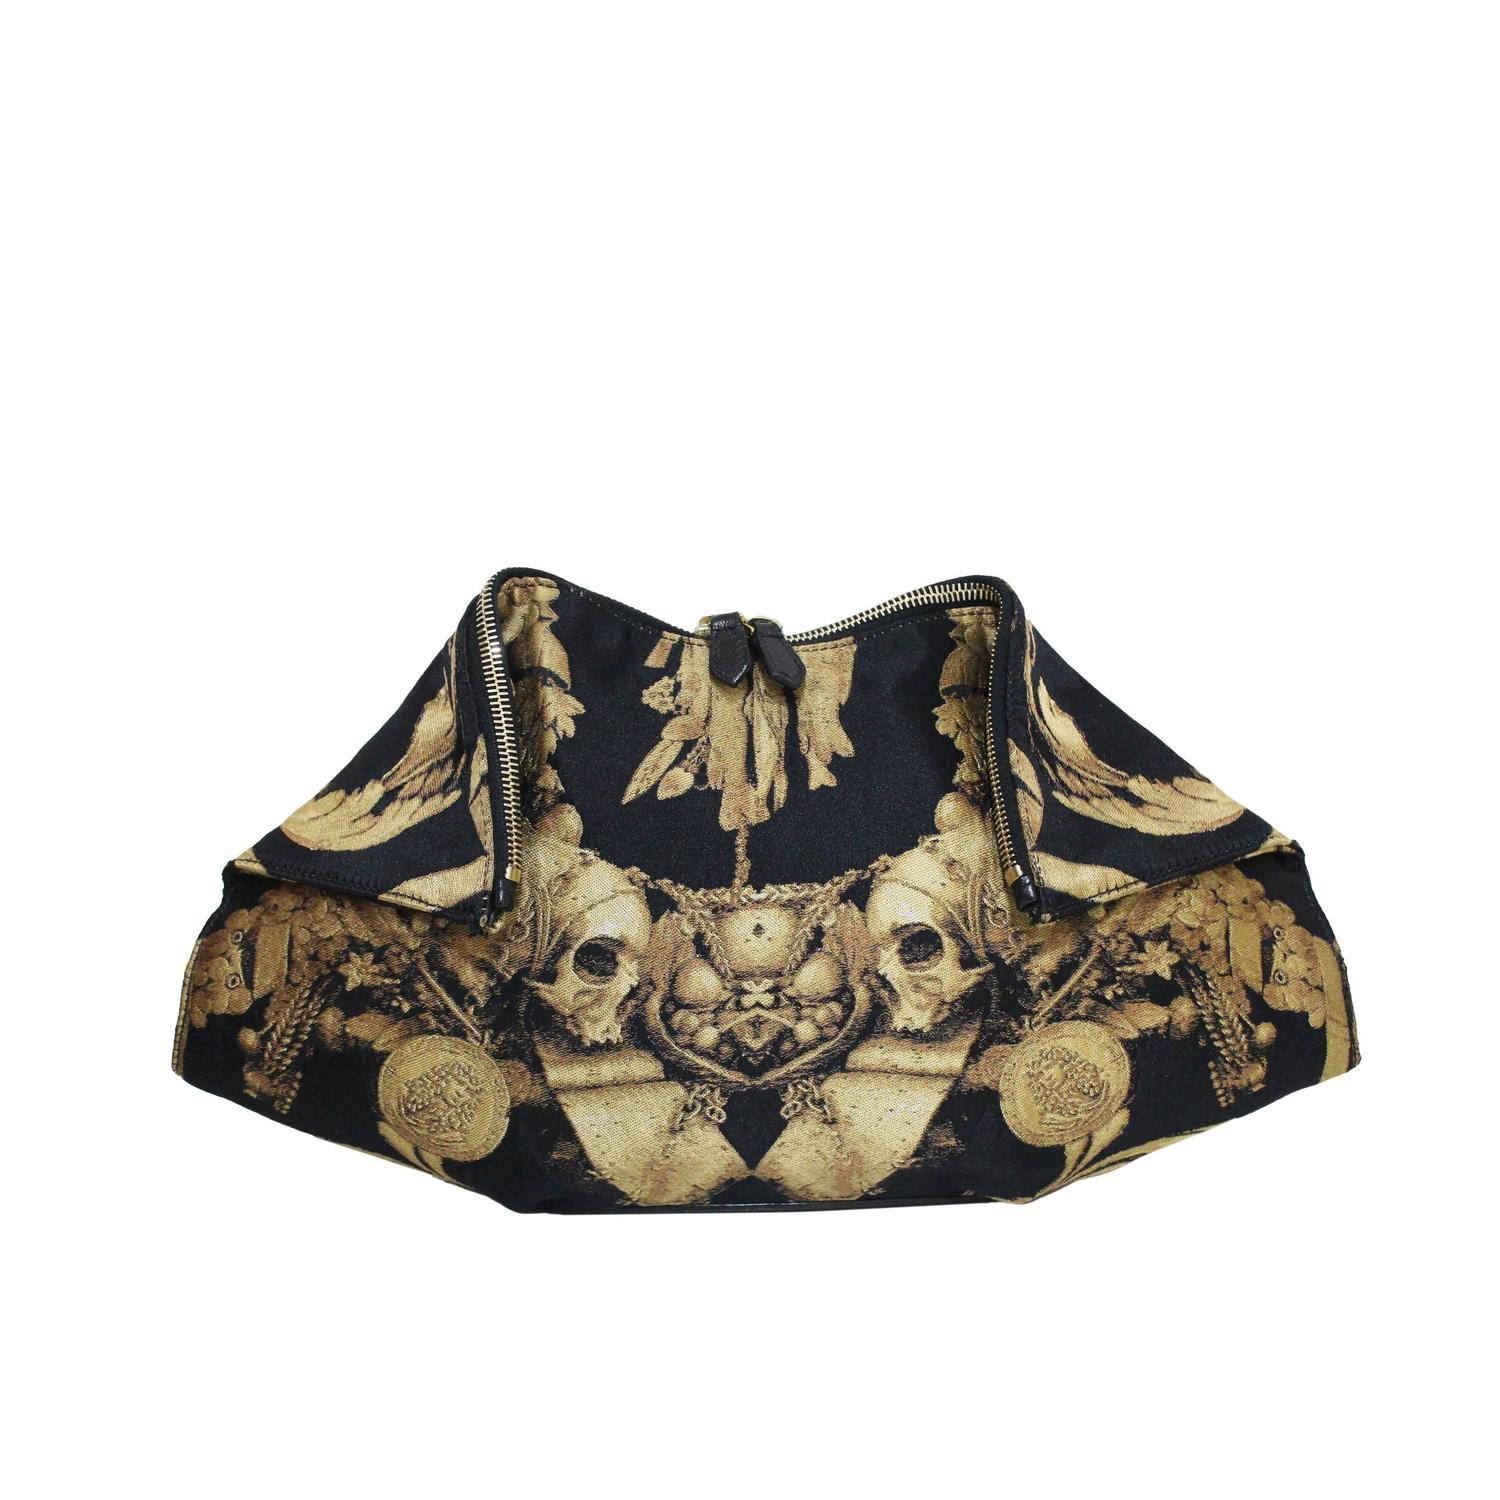 One Of A Kind Archive Handbags and Purses - London, W11 1LR - 1stdibs